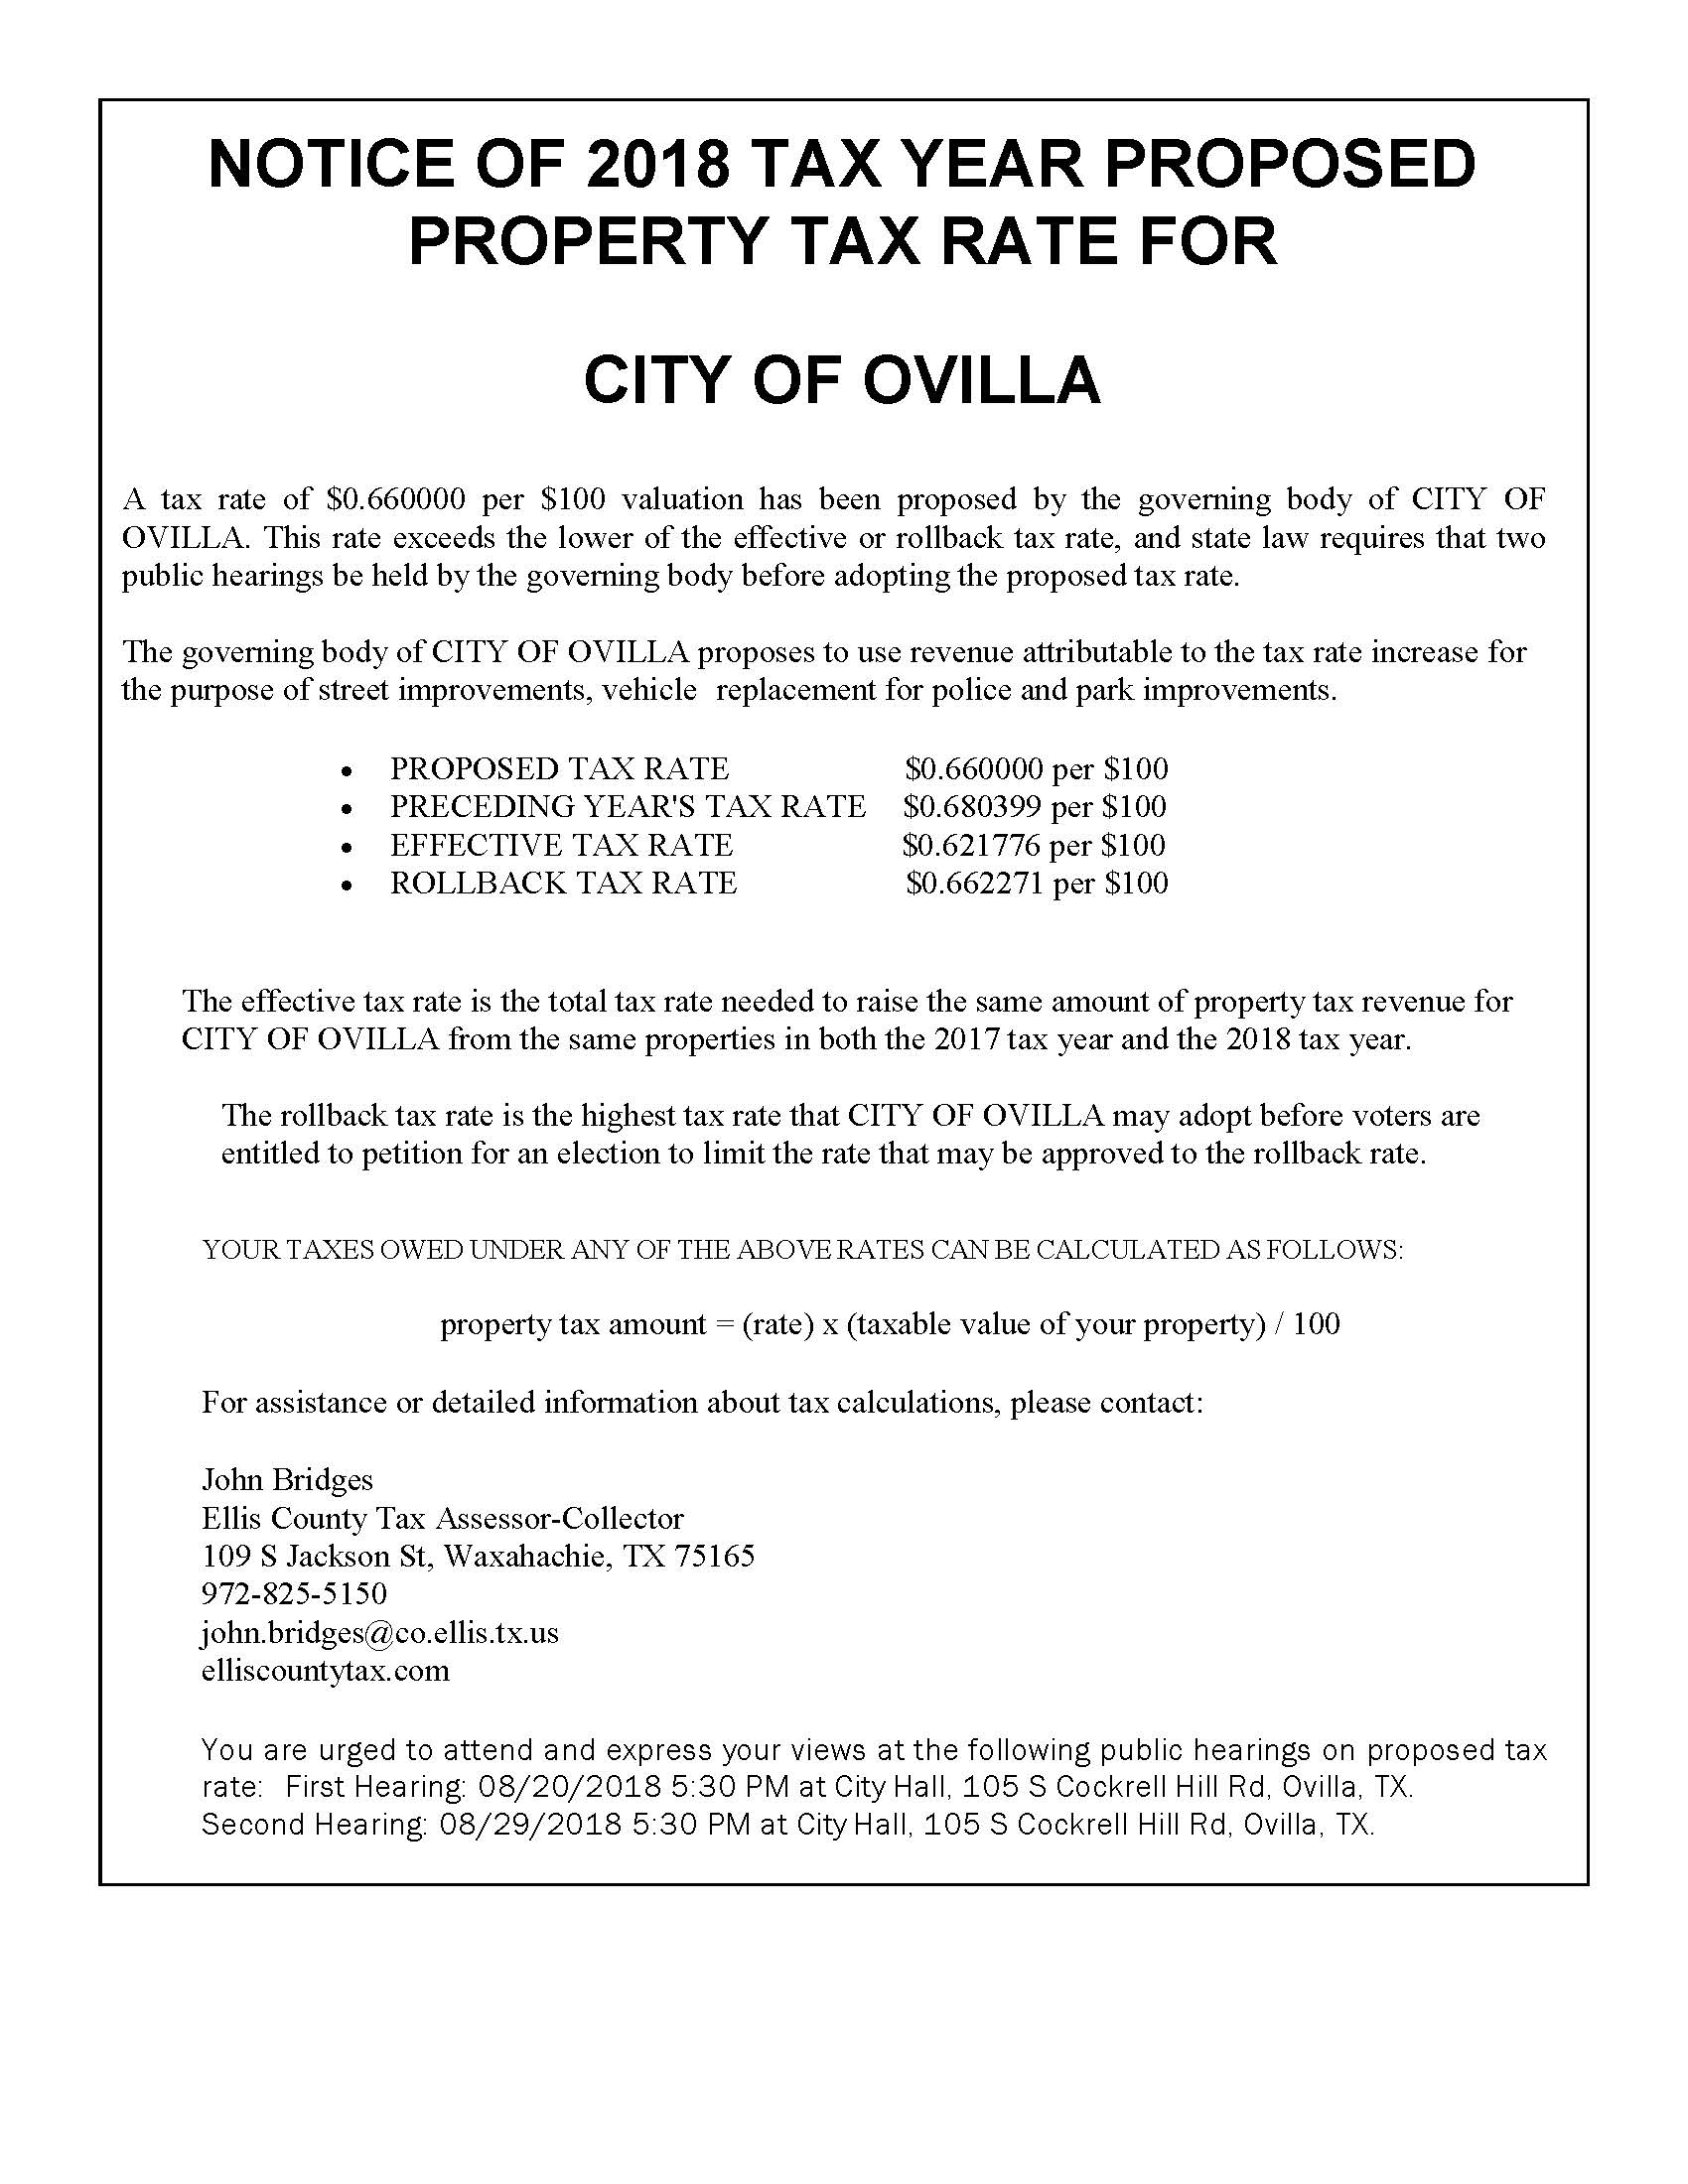 NOTICE. property tax year proposedV2